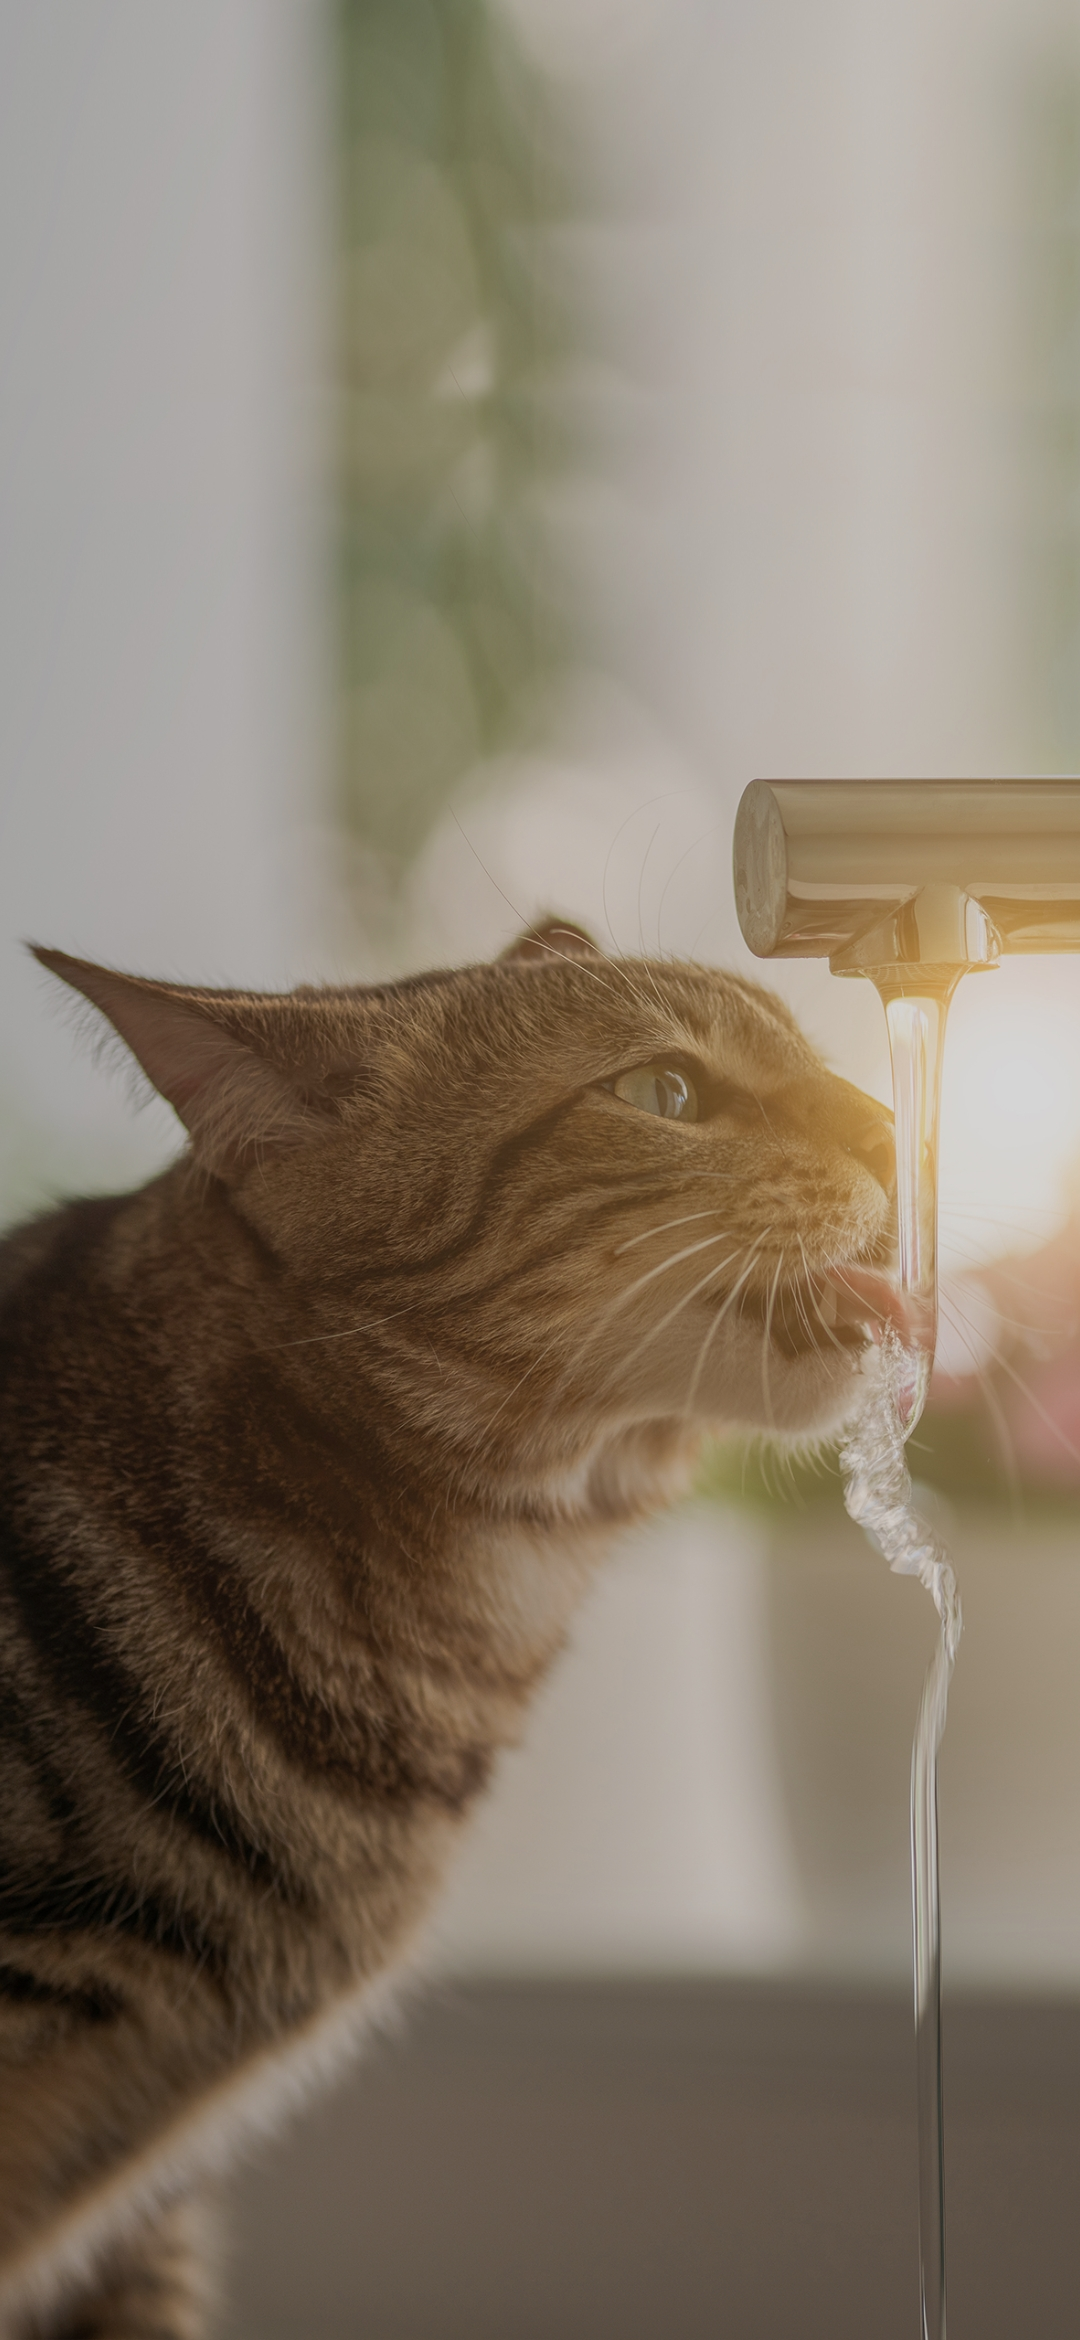 Cat drinking water from tap